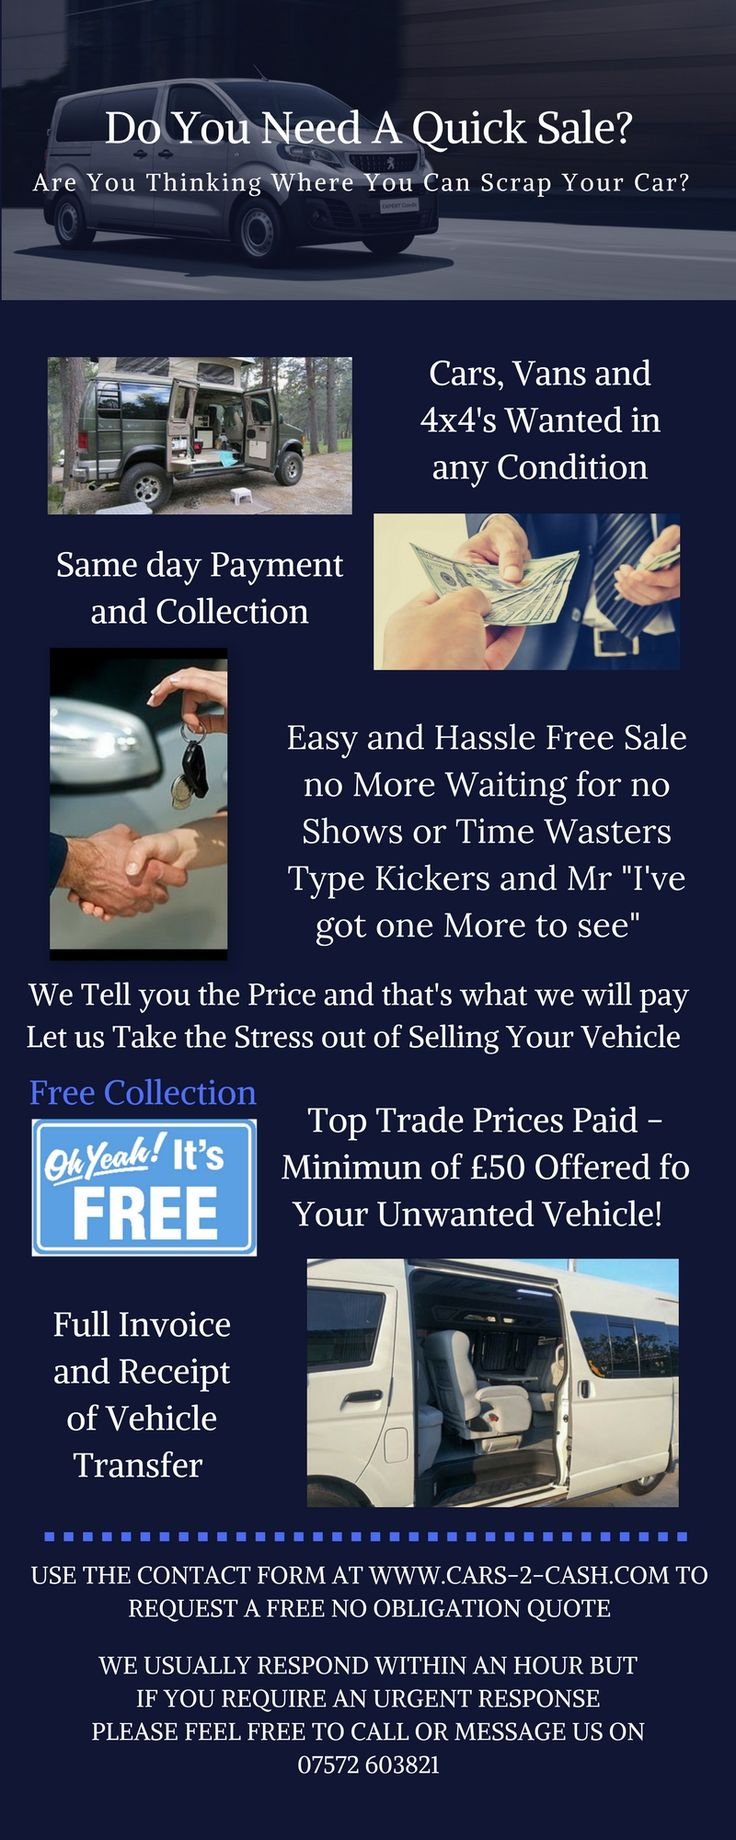 """Easy and hassle free sale, no more waiting for no shows ot time wasters, tyre kickers and Mr. """"I've got one more to see"""". Let us take the stress out of selling your vehicle."""